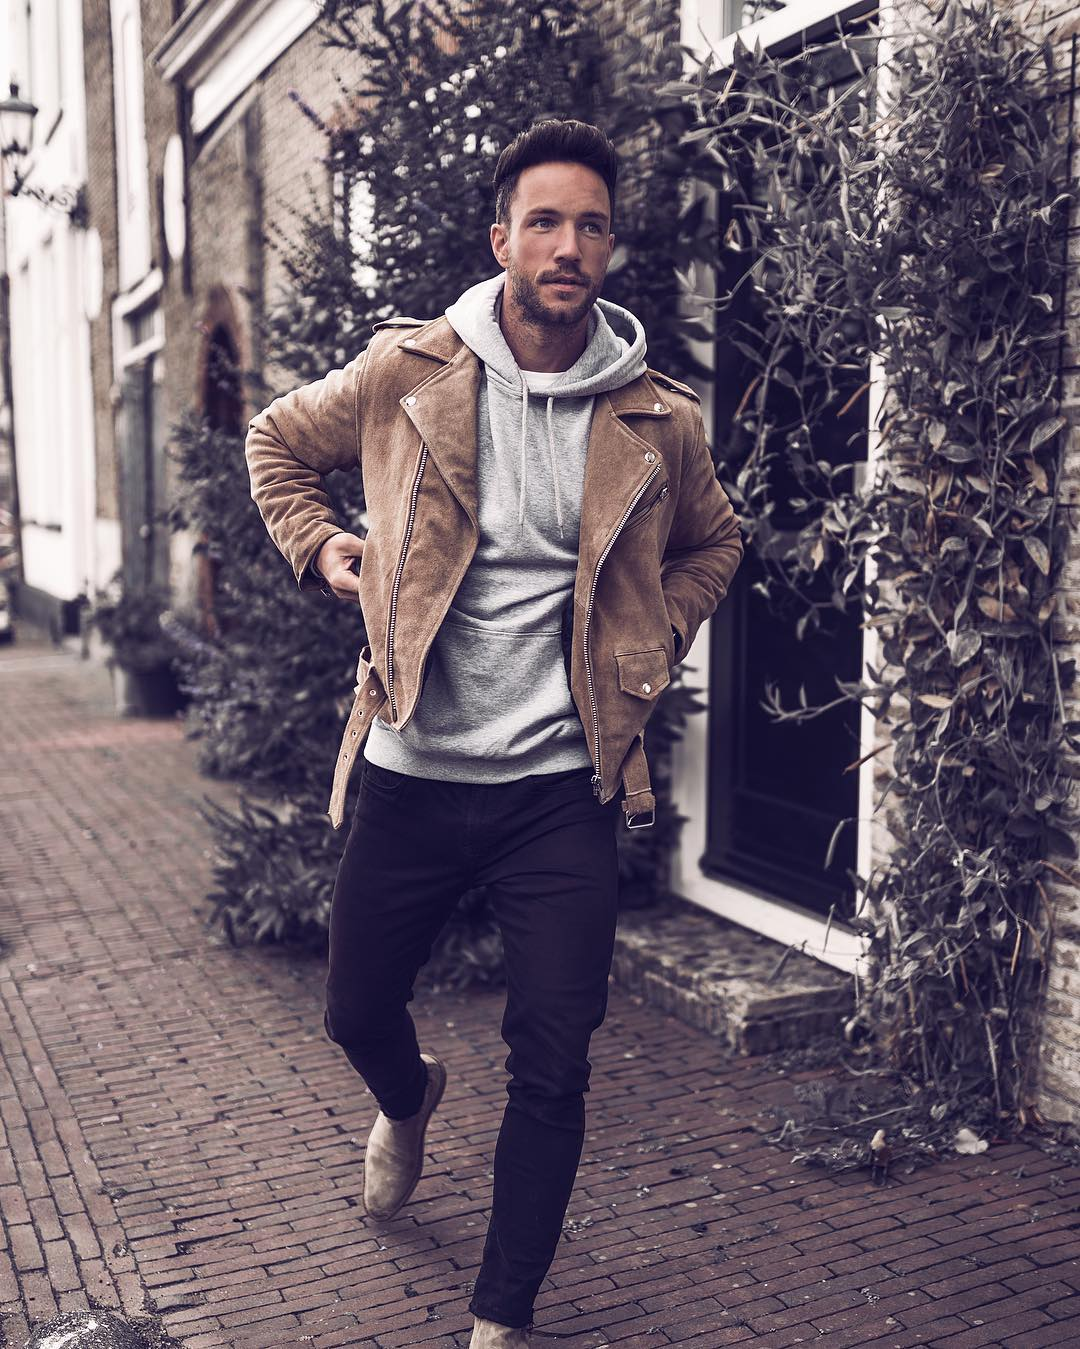 Looking for some amazing winter outfits? Then you are going to love these 5 insanely cool winter outfits I've curated for you today. #winter #outfit #ideas #mens #fashion #street #style